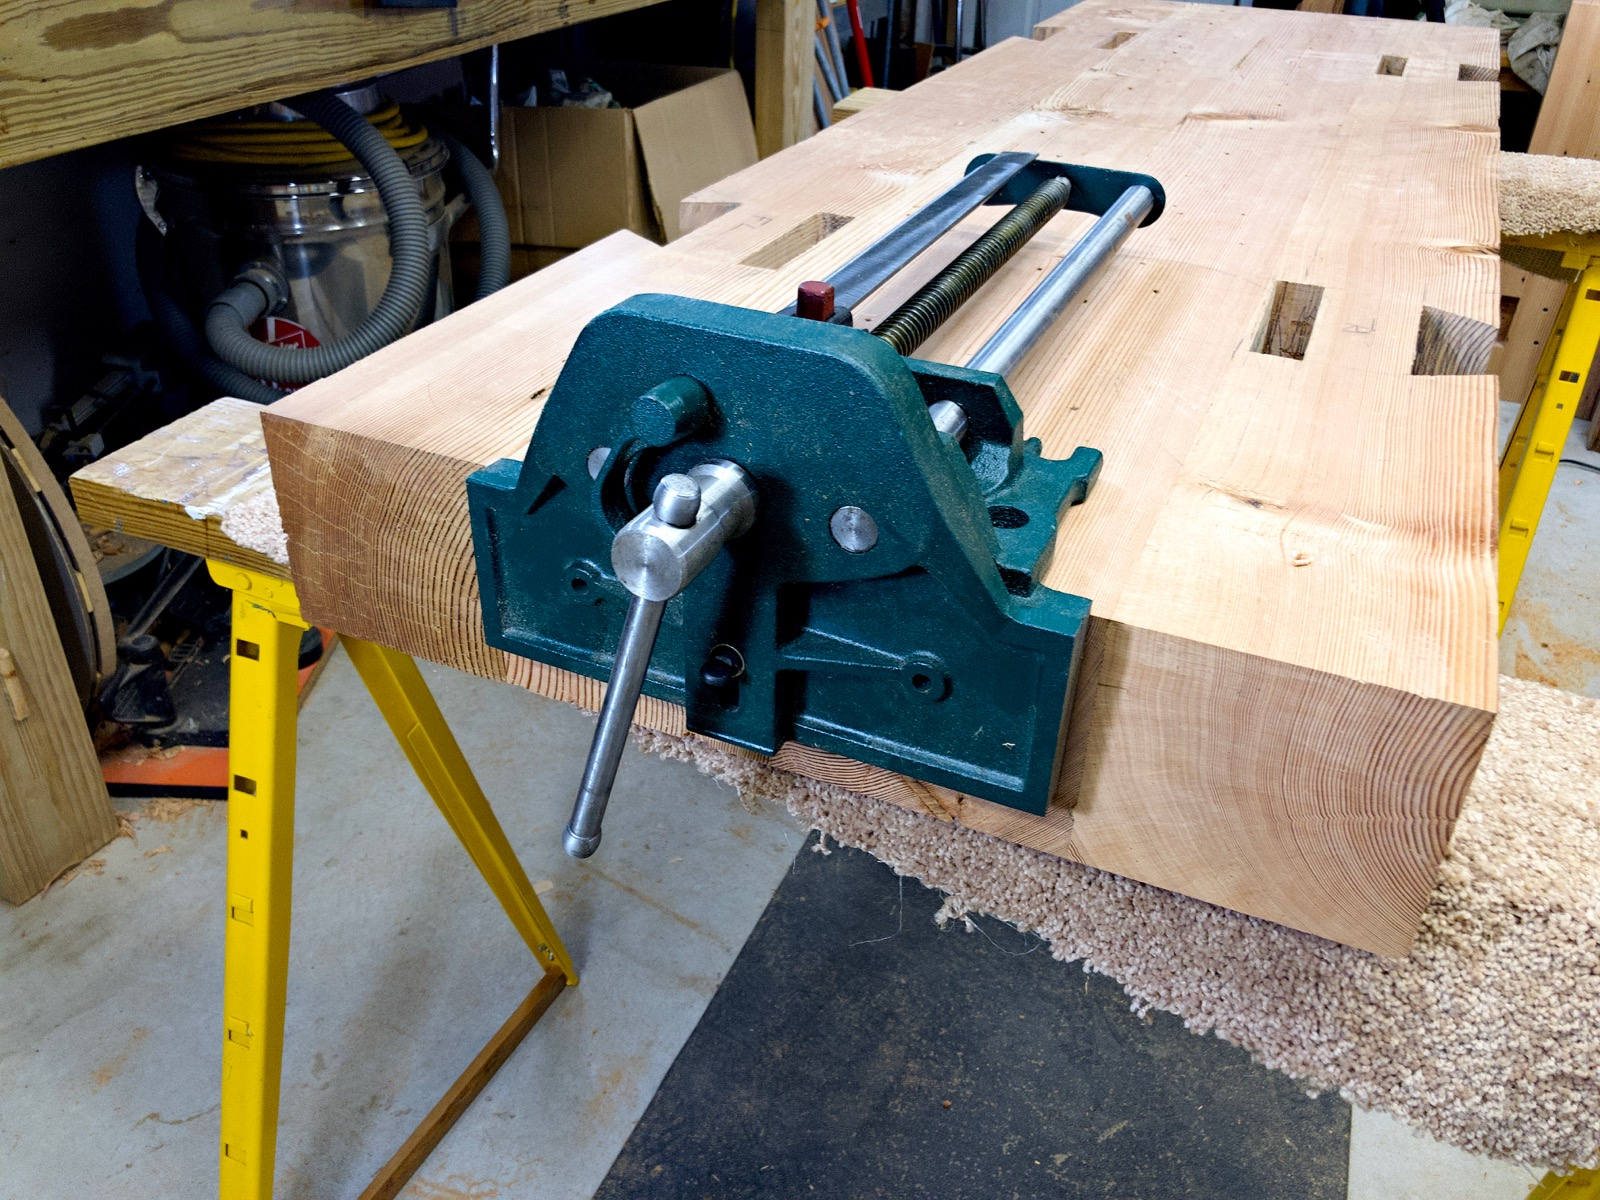 The quick vise sitting on the bench.